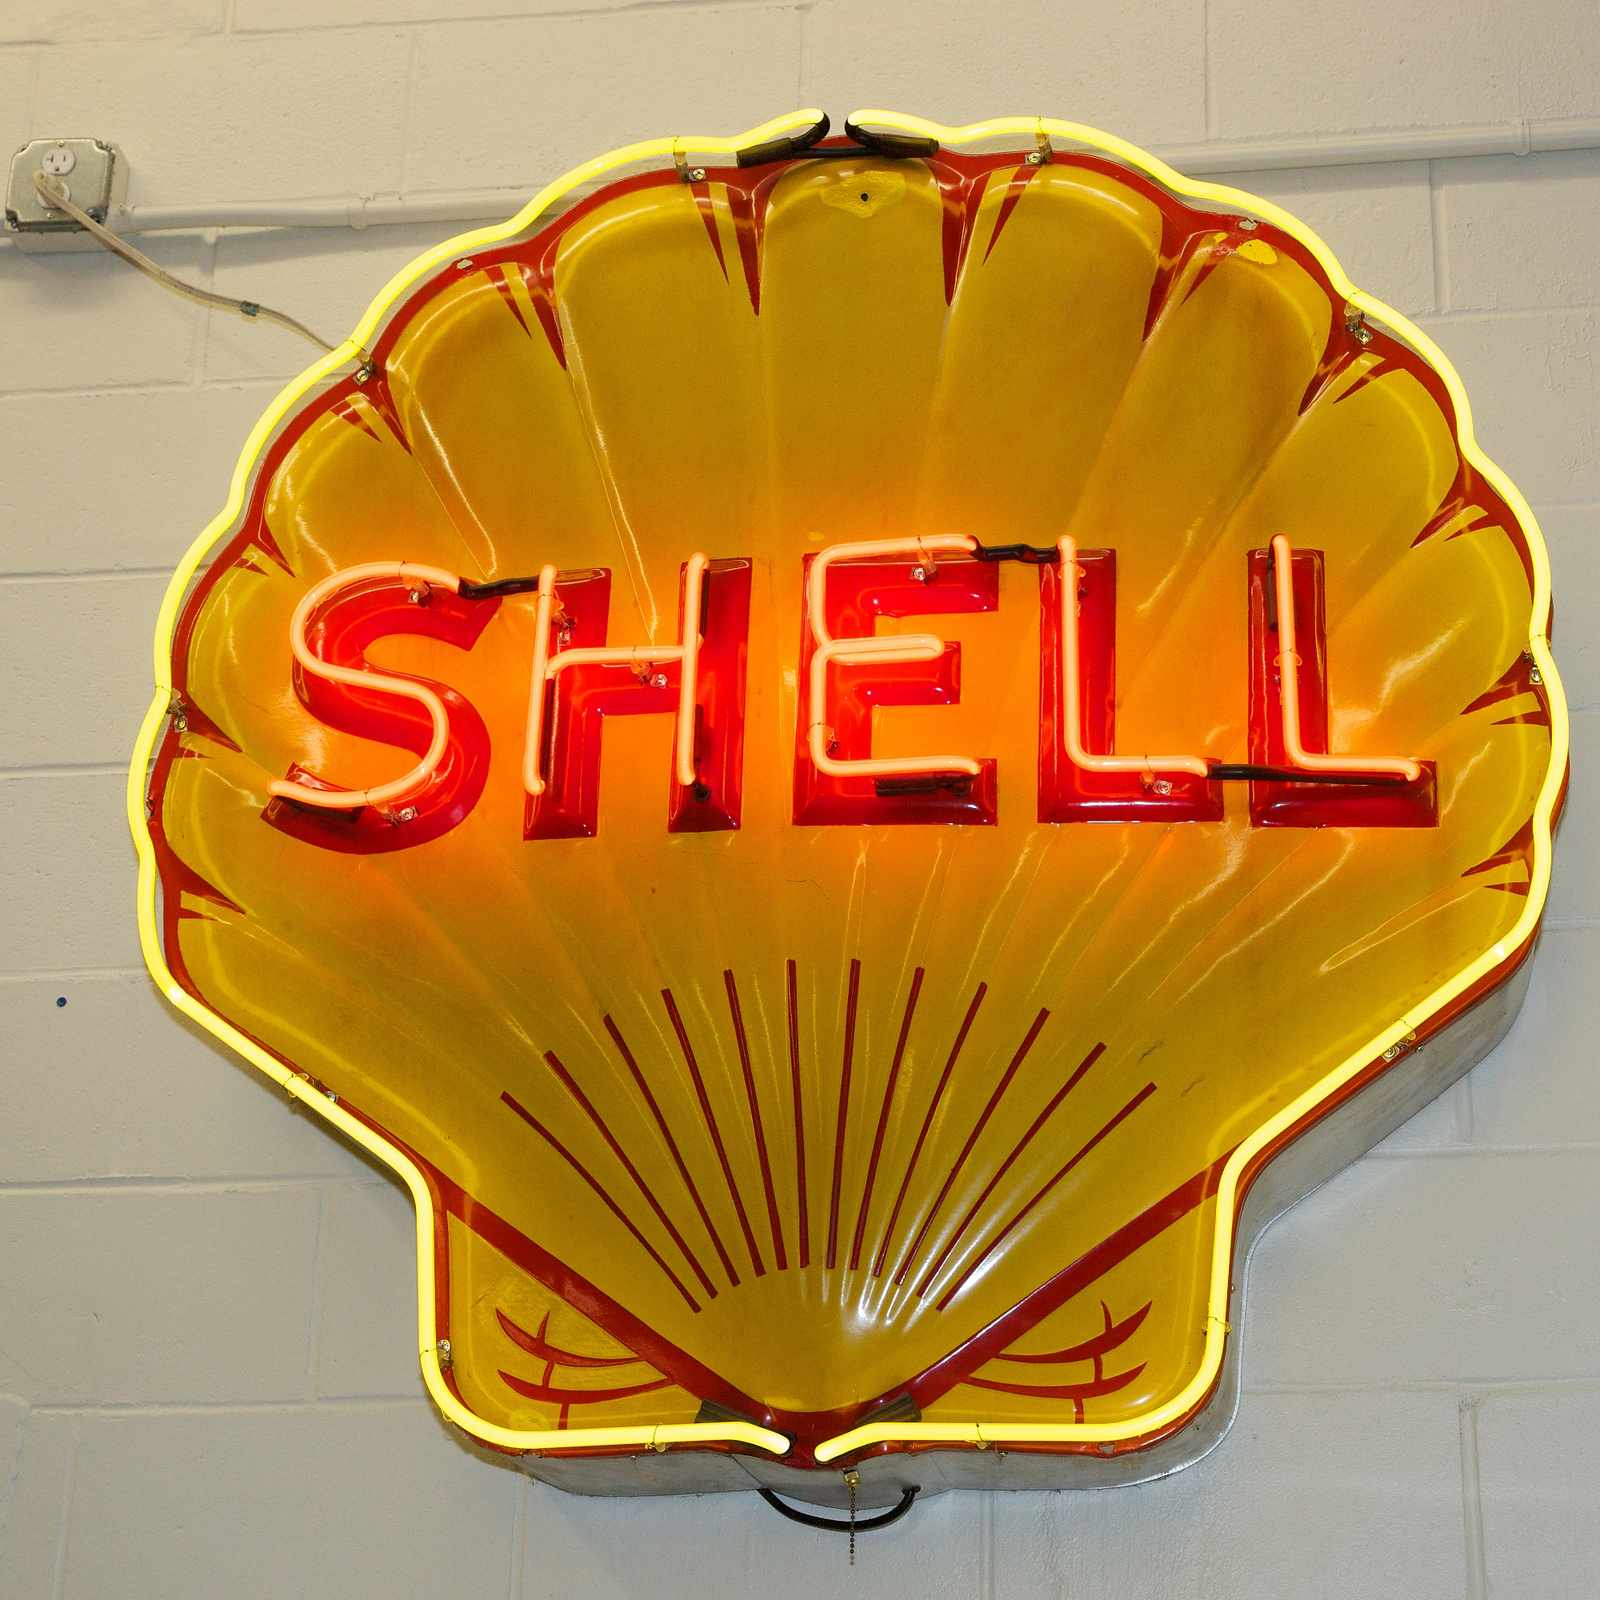 Less worldly, more wise: a letter to Ben van Beurden, CEO of Shell